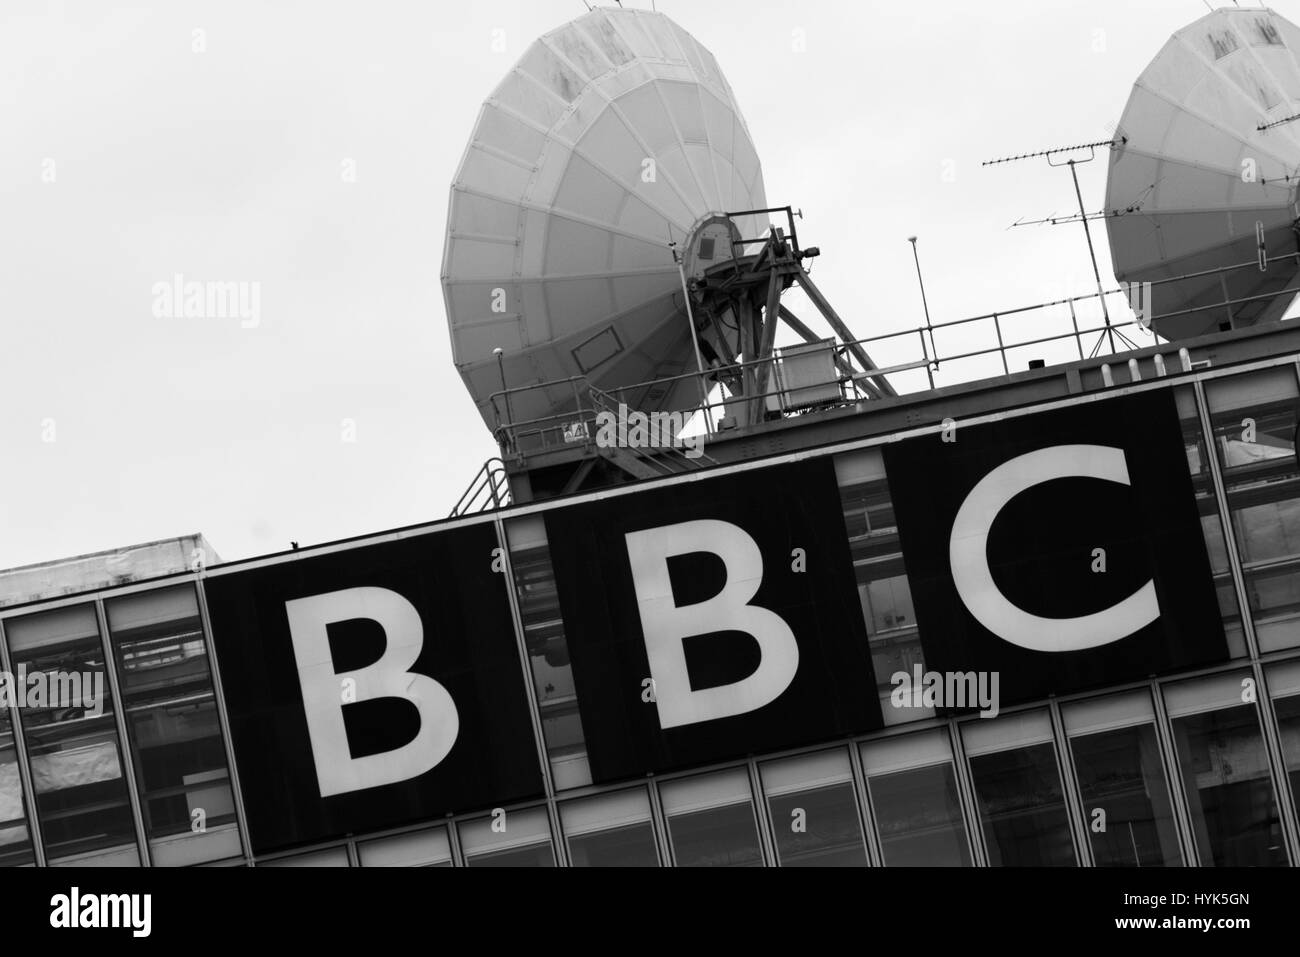 BBC logo with satellite dishes - Stock Image